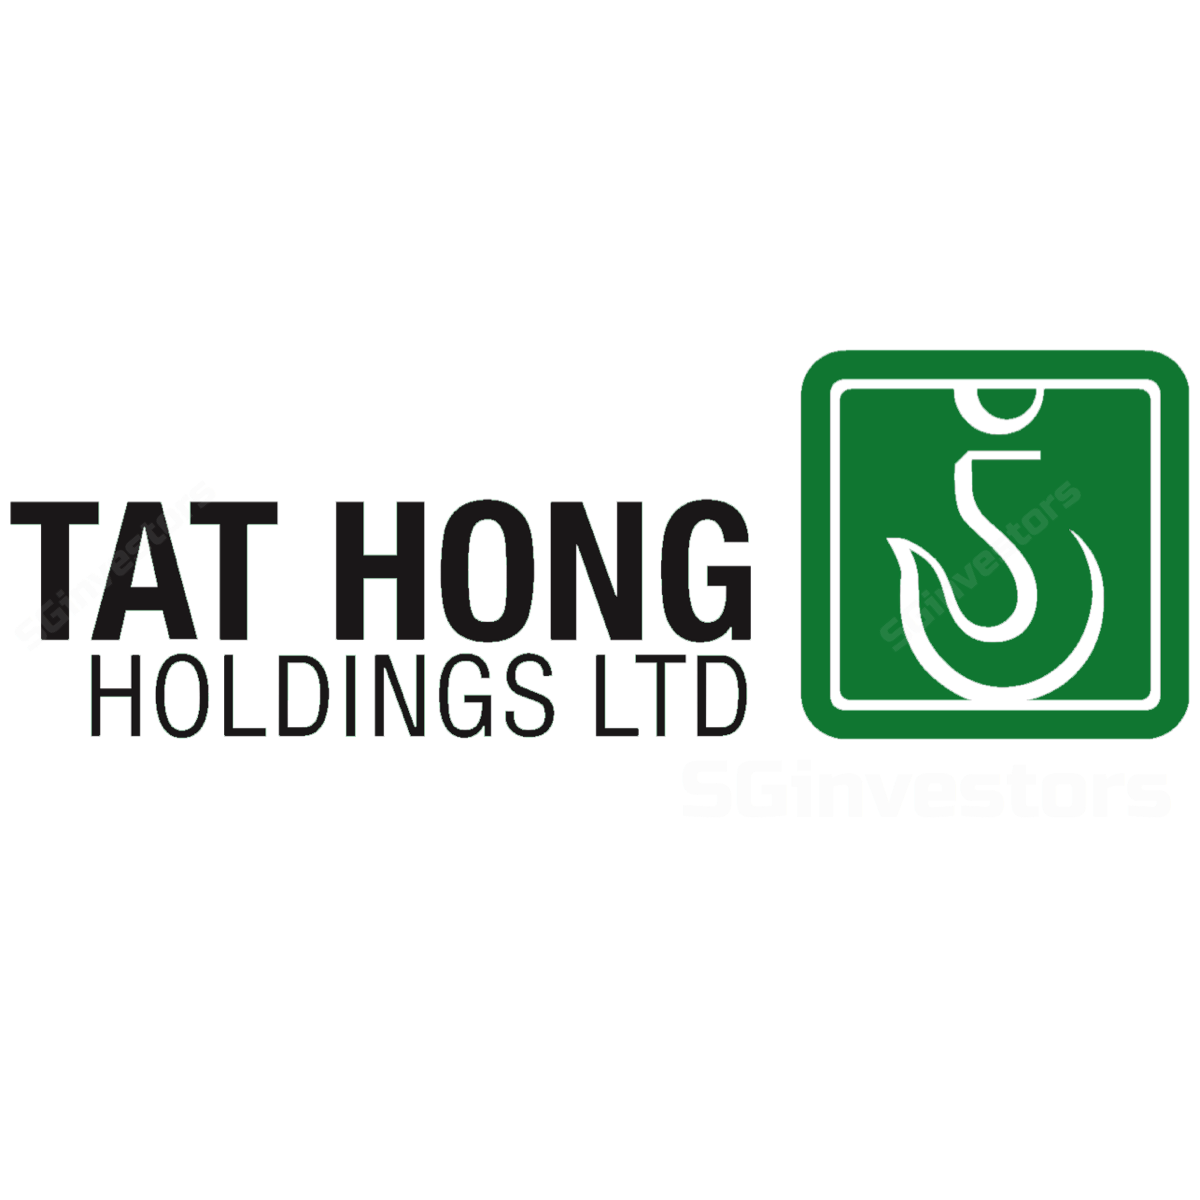 Tat Hong Holdings - OCBC Investment 2016-11-16: Raising up to S$41.1m from rights issue